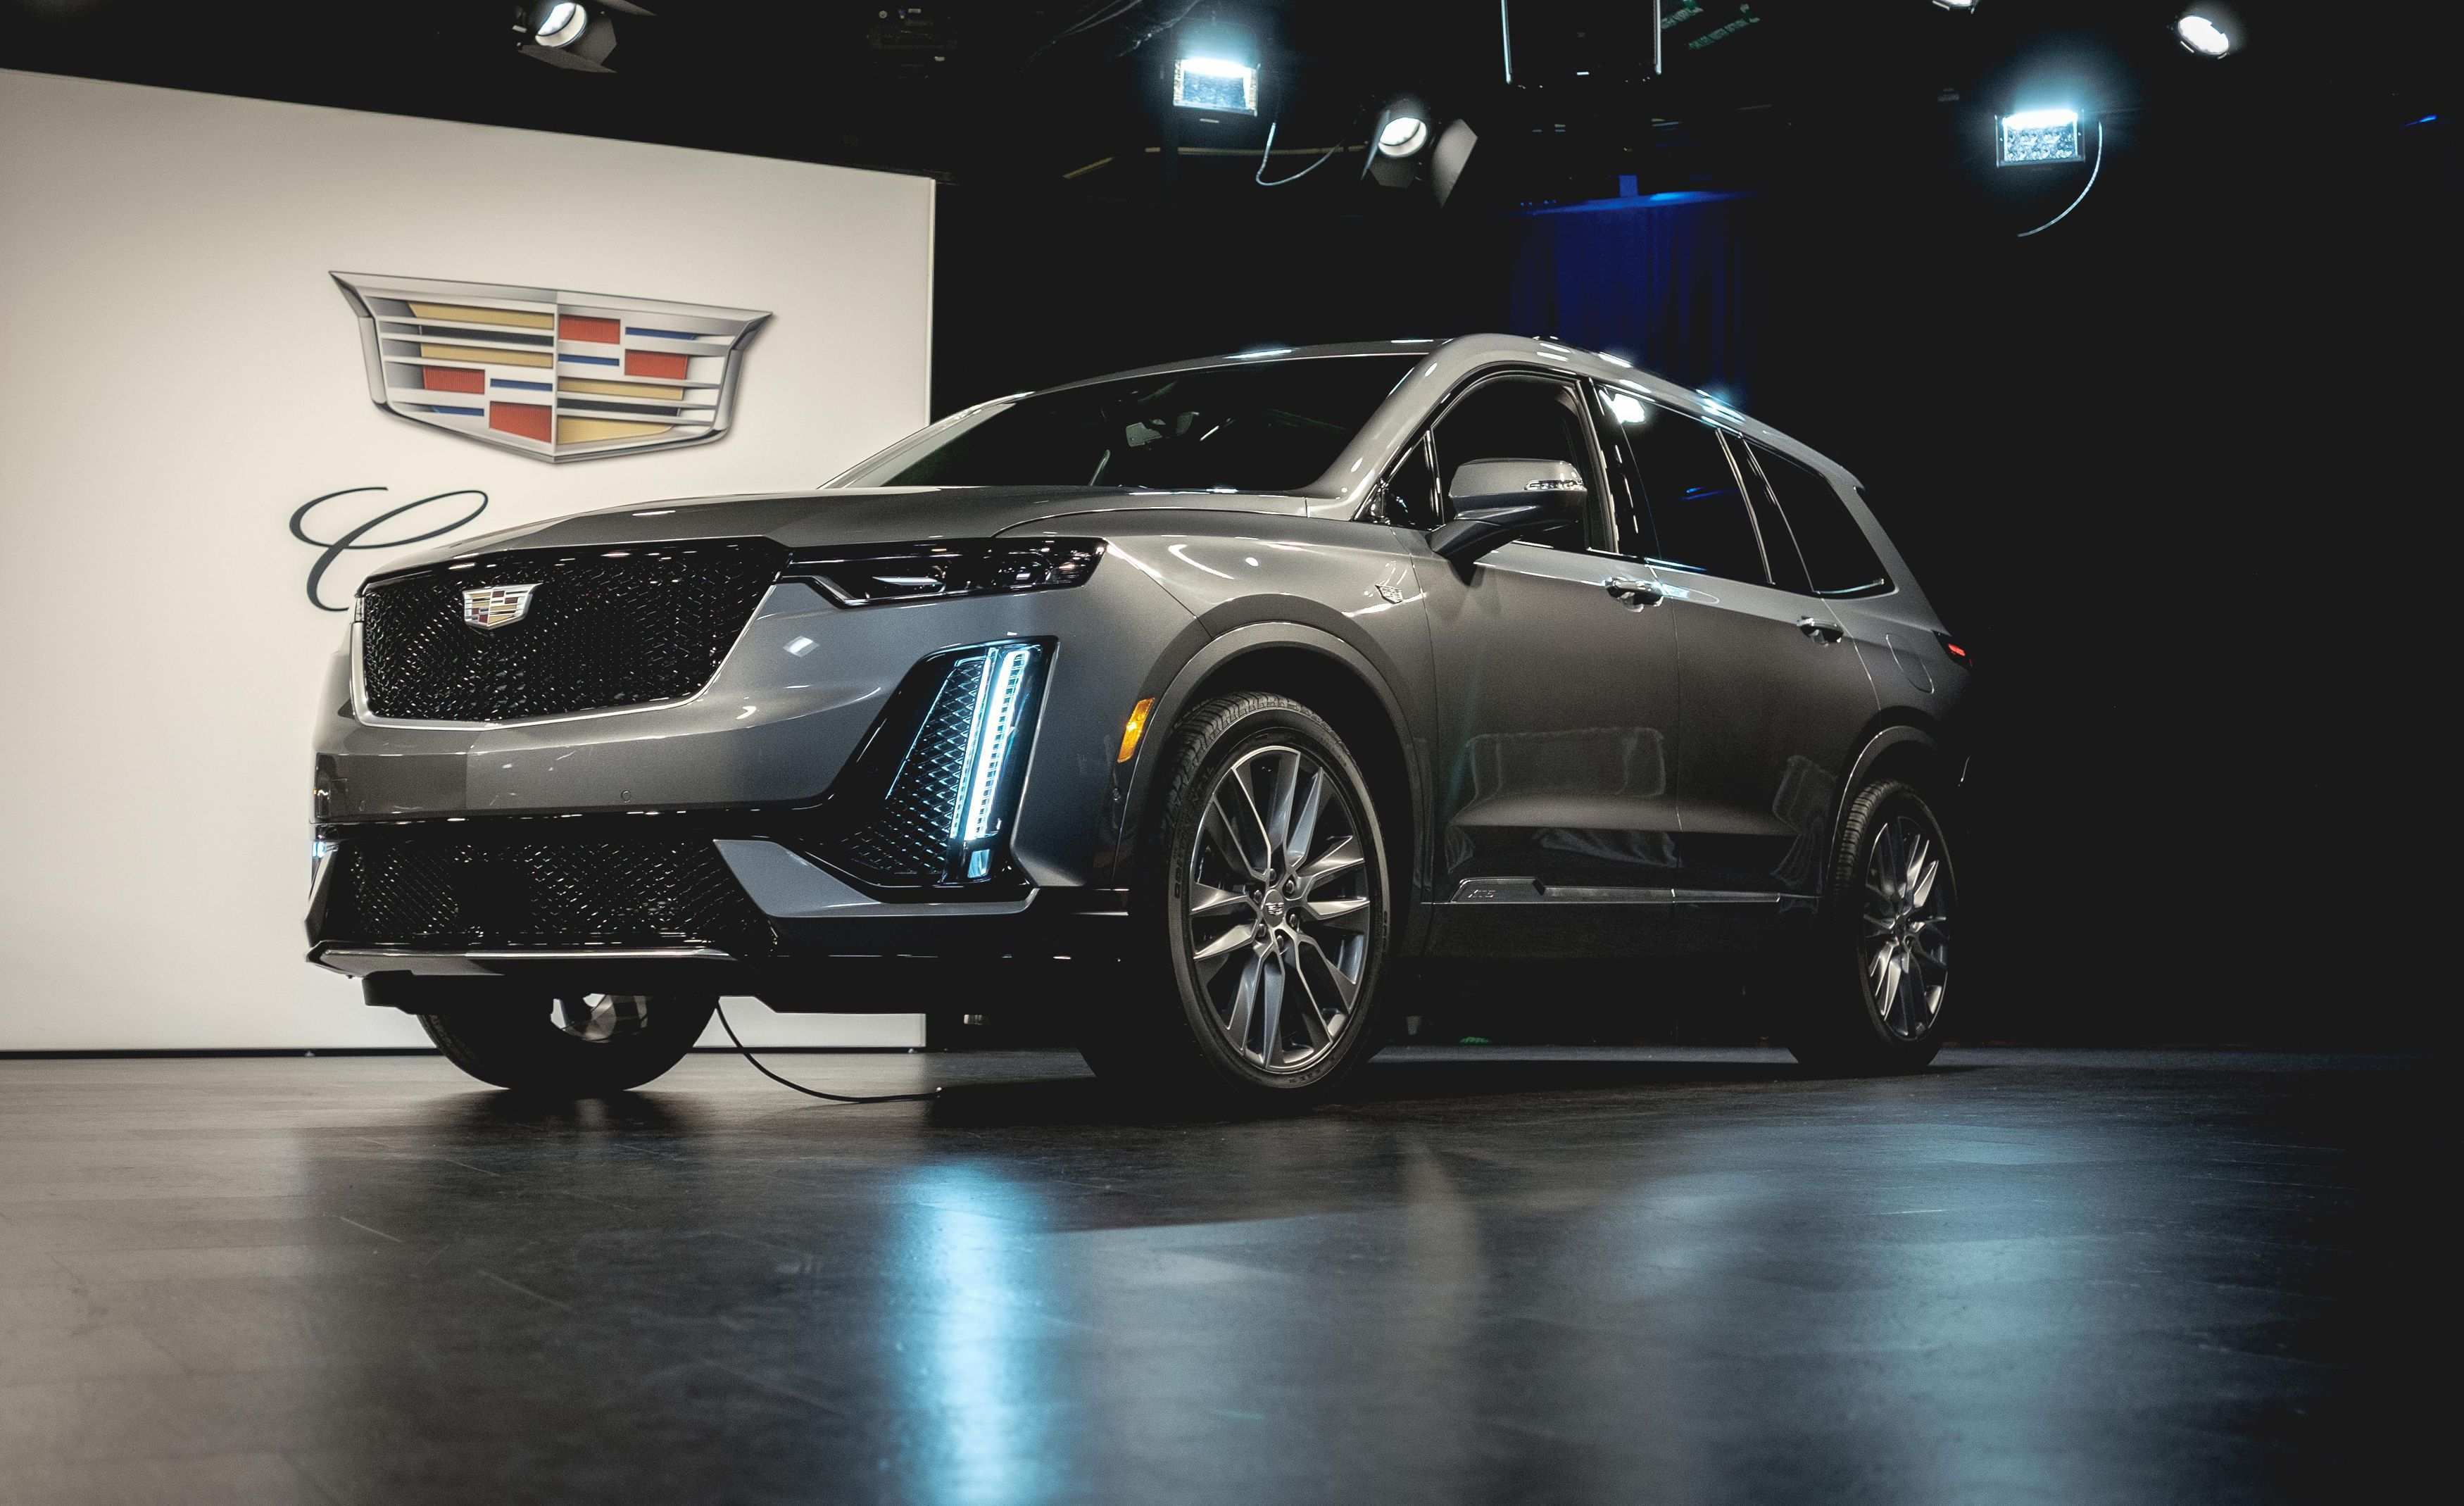 97 Great 2020 Cadillac Xt6 Exterior and Interior with 2020 Cadillac Xt6